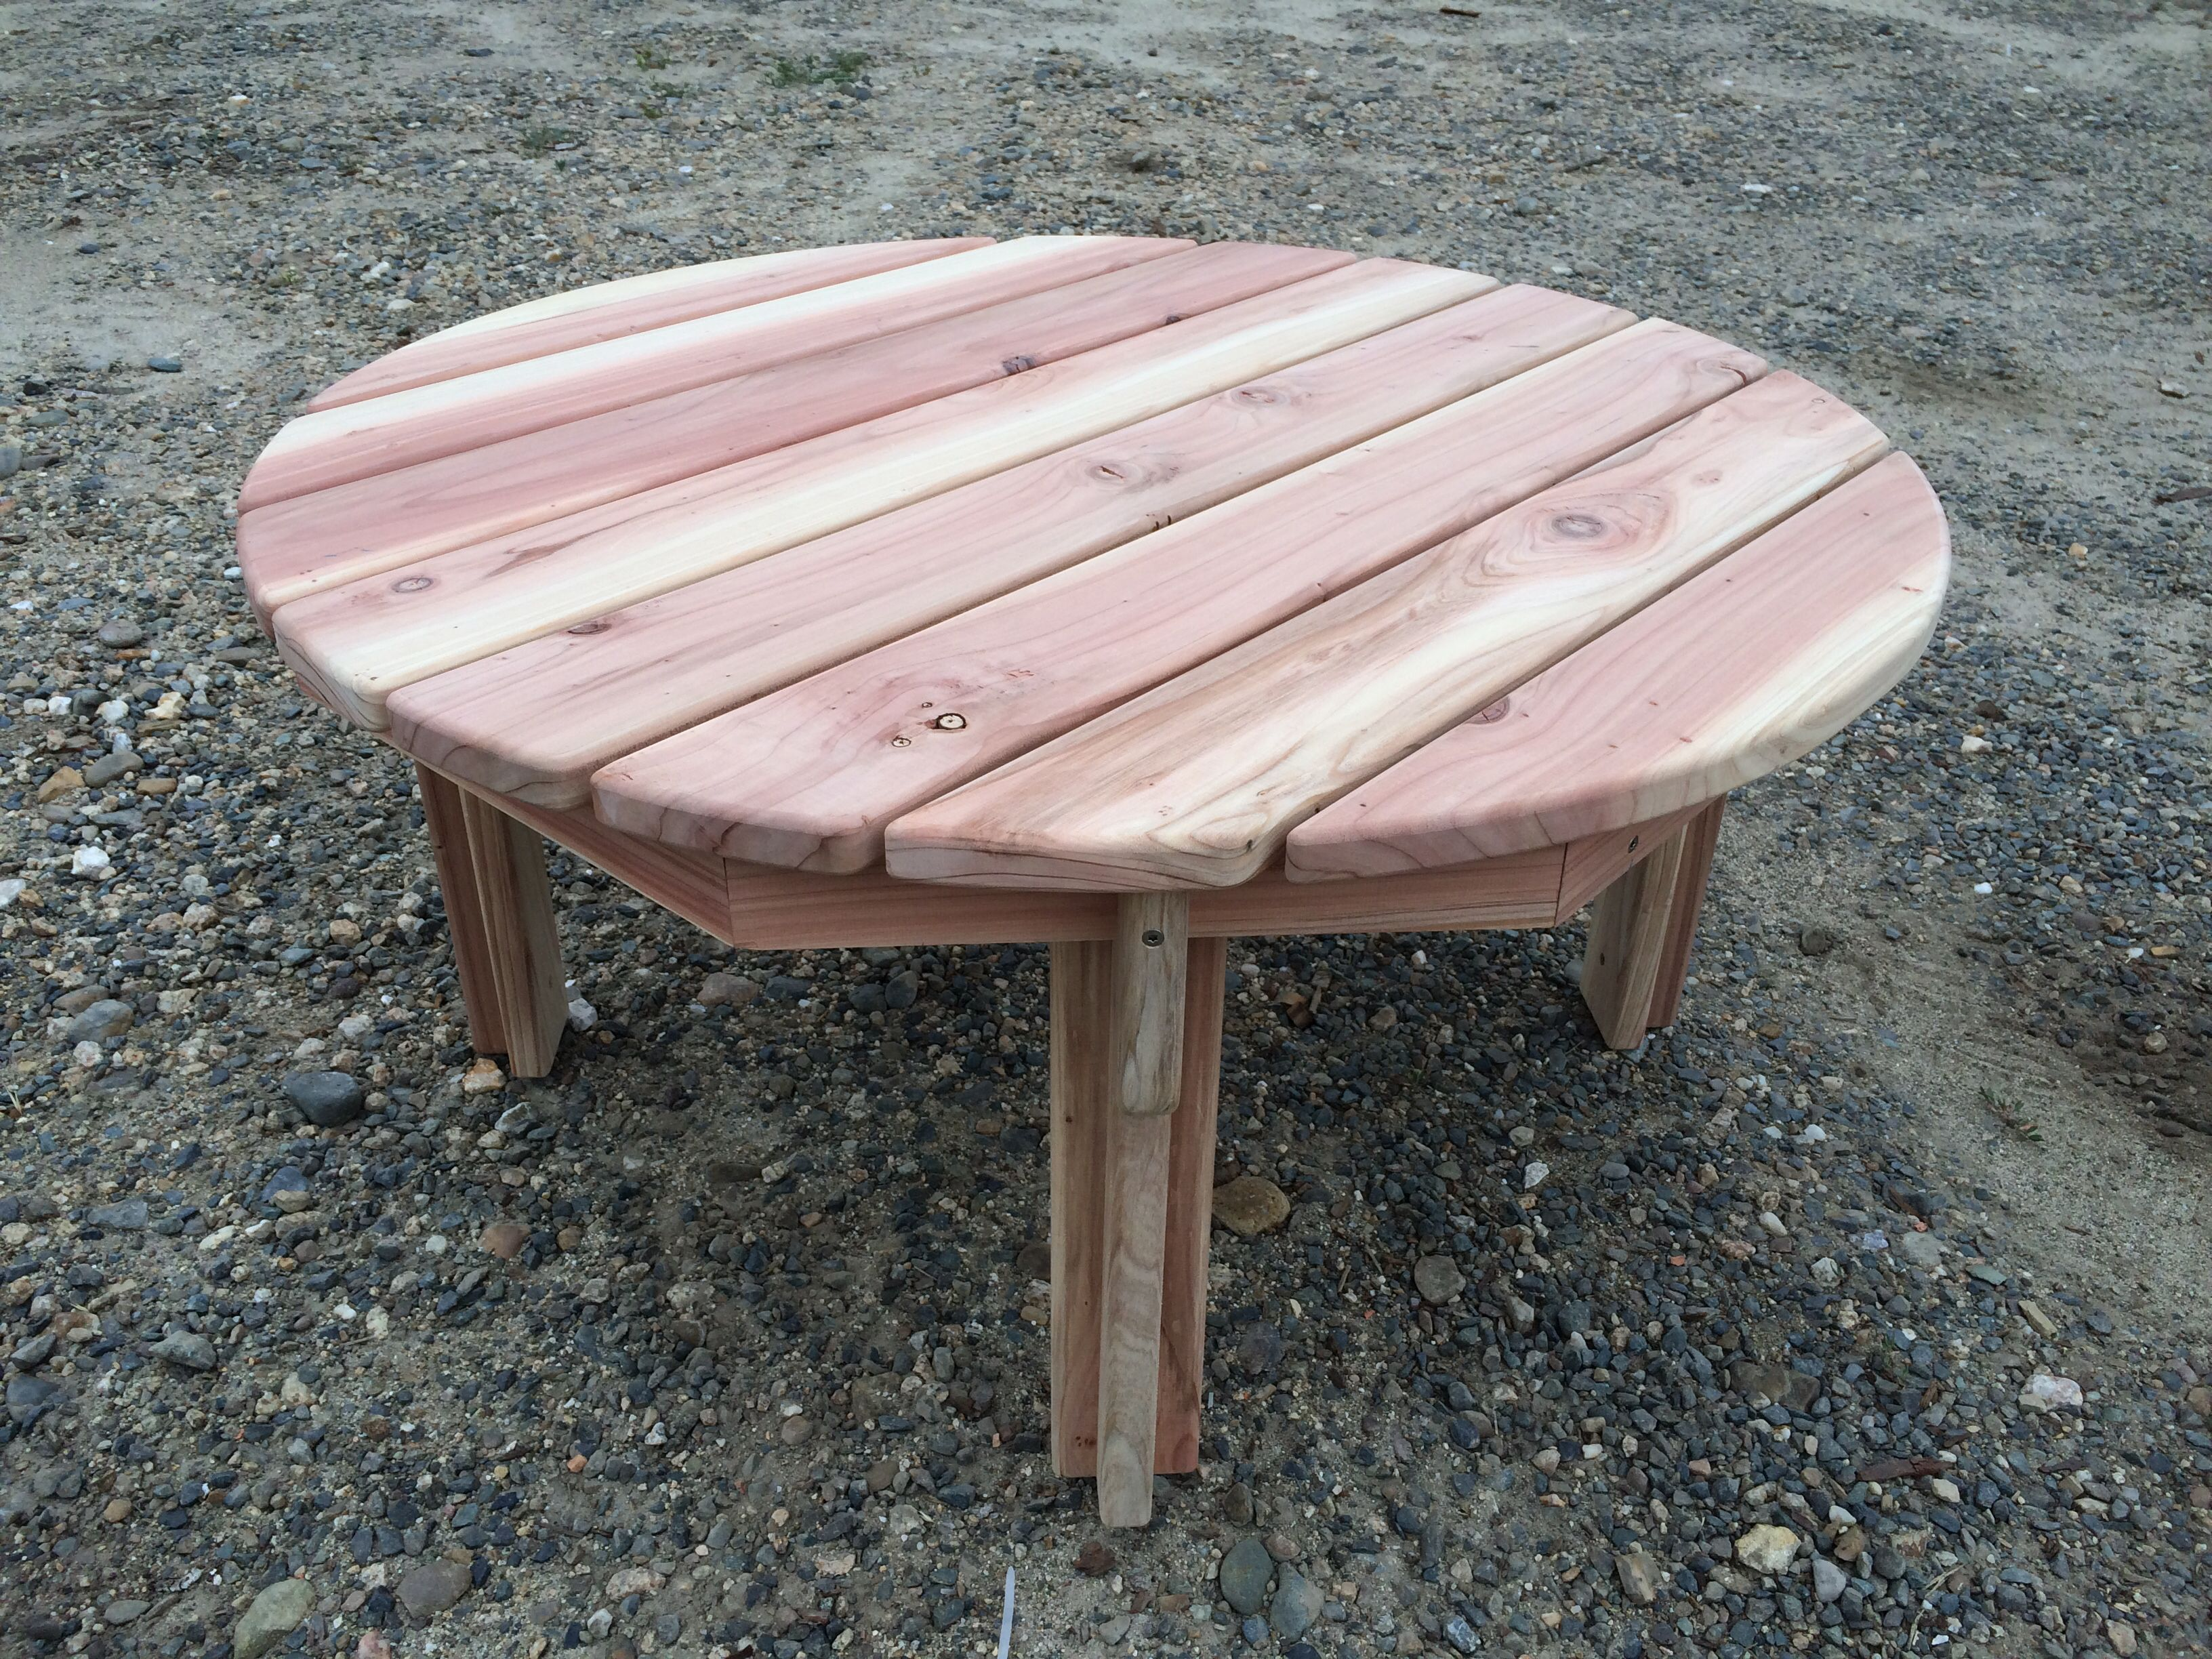 Knotthead Custom Sawing Fabworx 36 Round Redwood Adirondack Coffee Table Hand Made By Us Has The Same Styling As Our Cha Adirondack Furniture Types Of Wood Furniture Making [ 2448 x 3264 Pixel ]